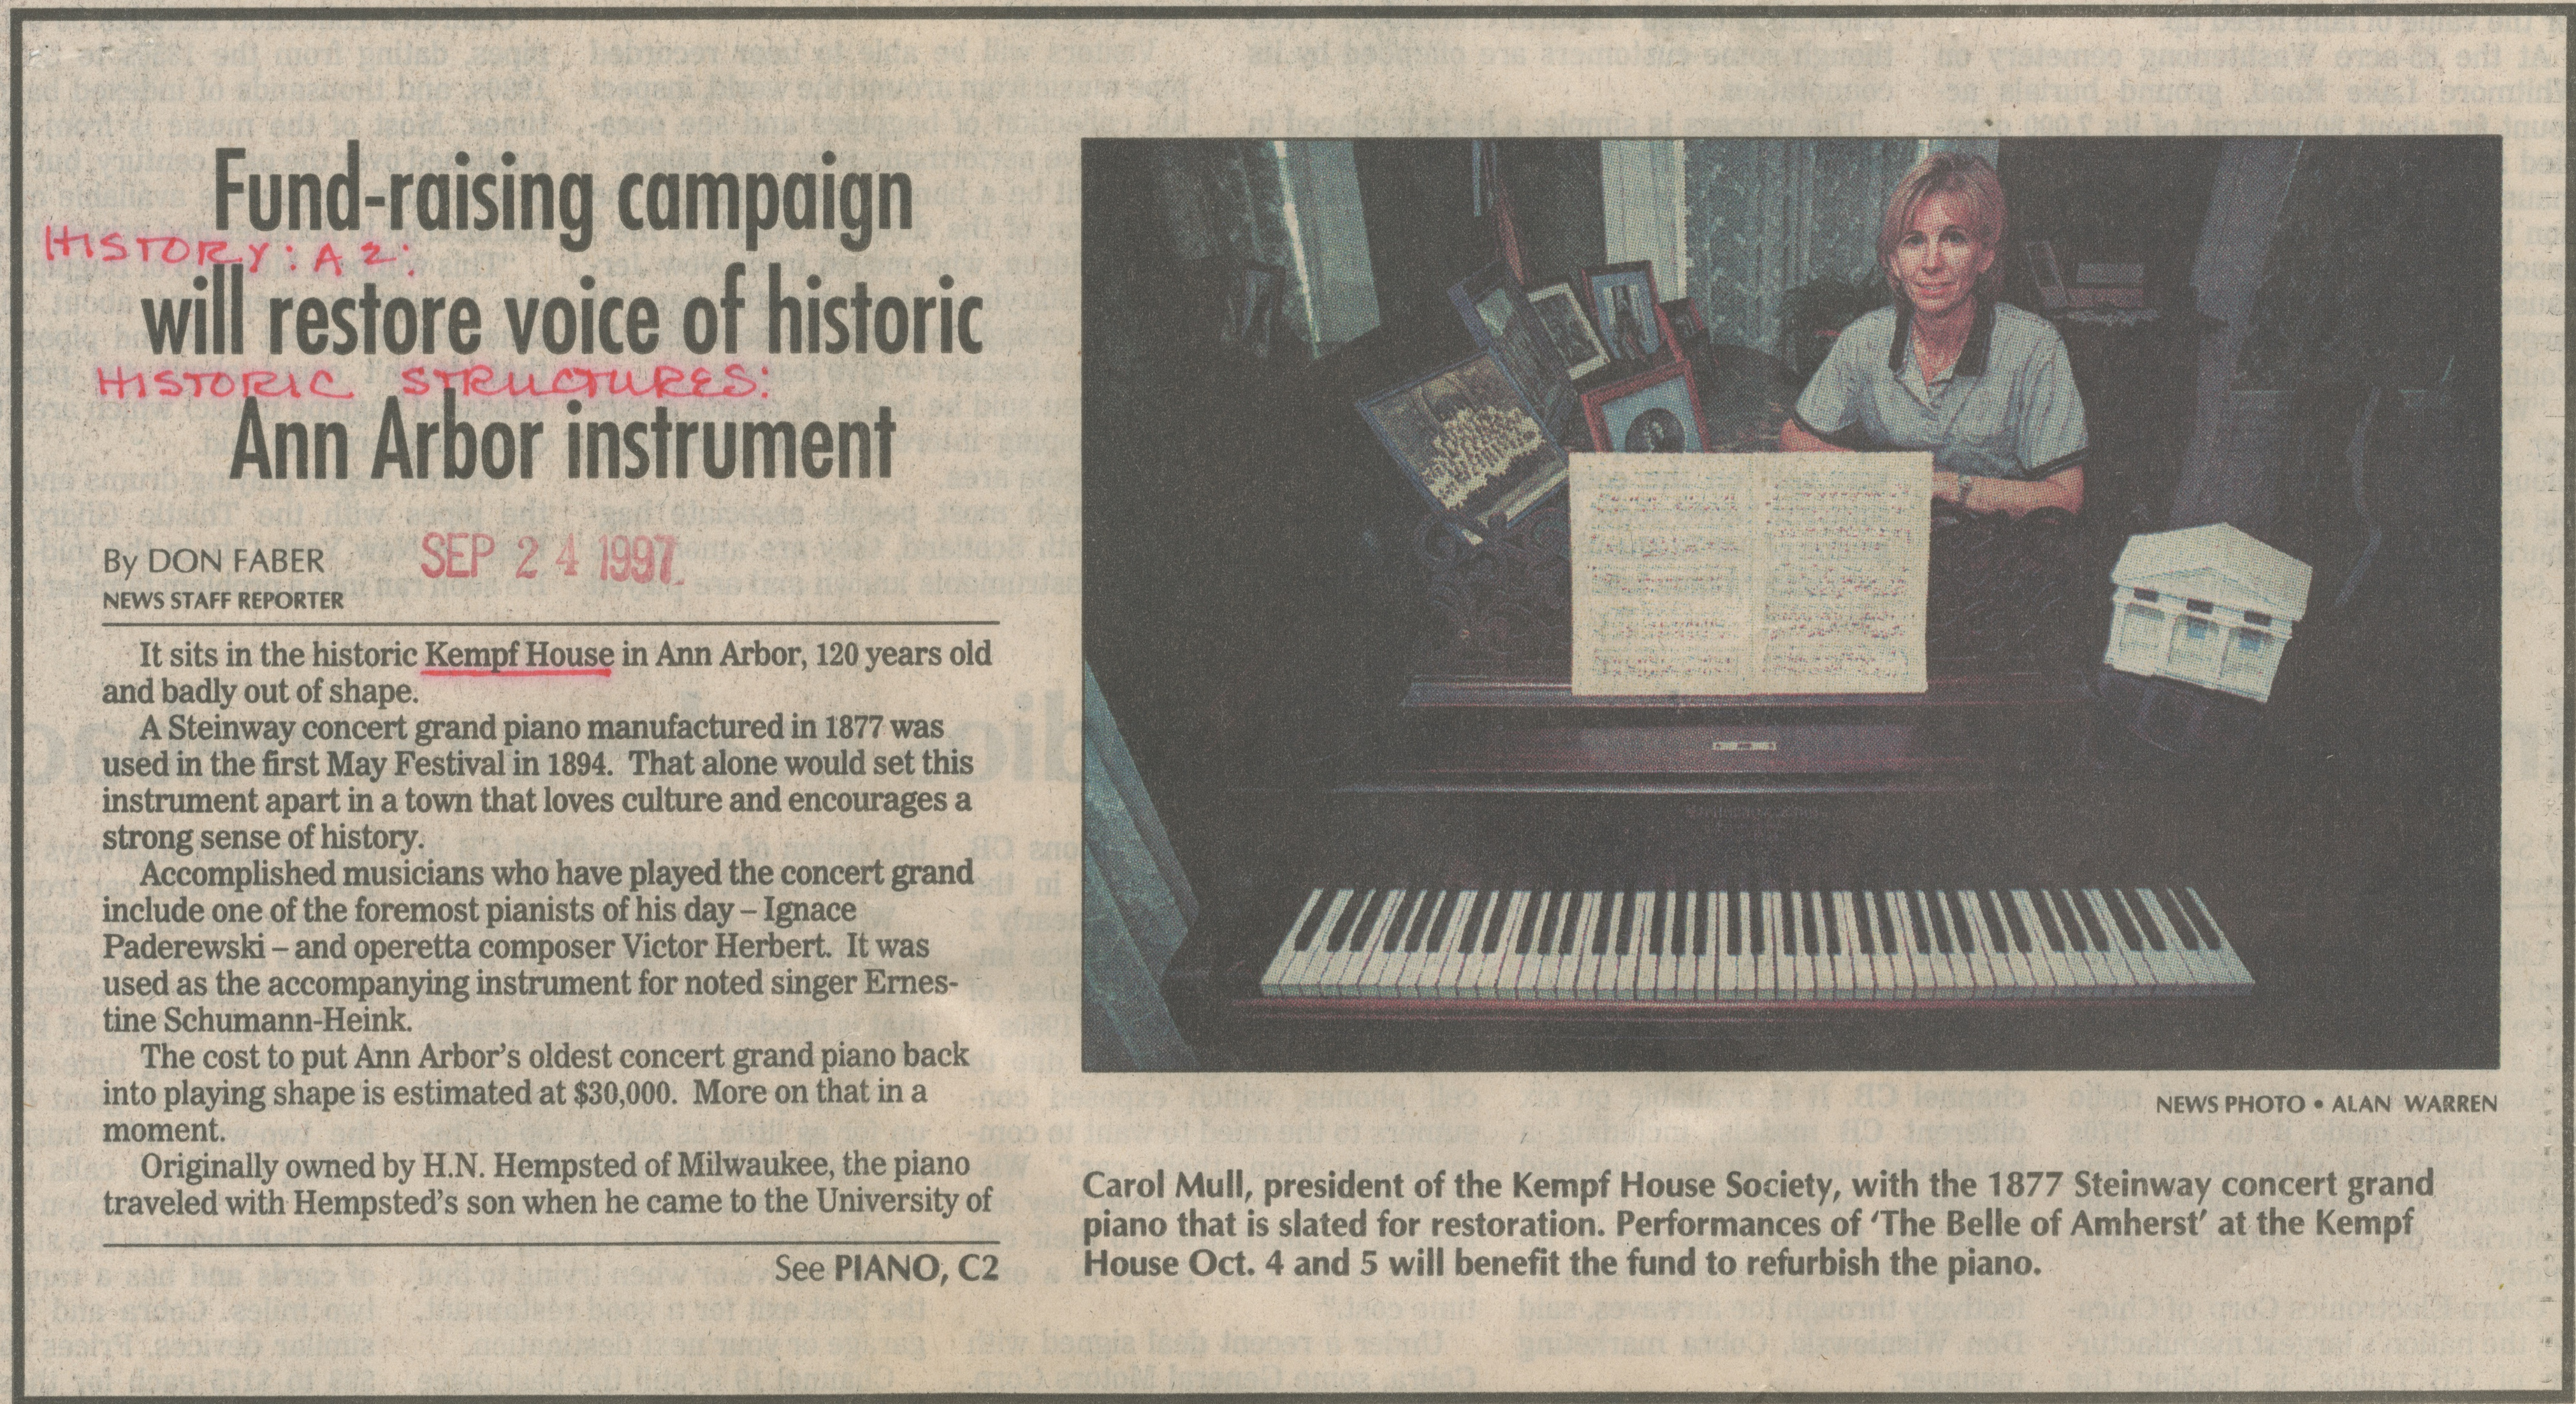 Fund-Raising Campaign Will Restore Voice Of Historic Ann Arbor Instrument image